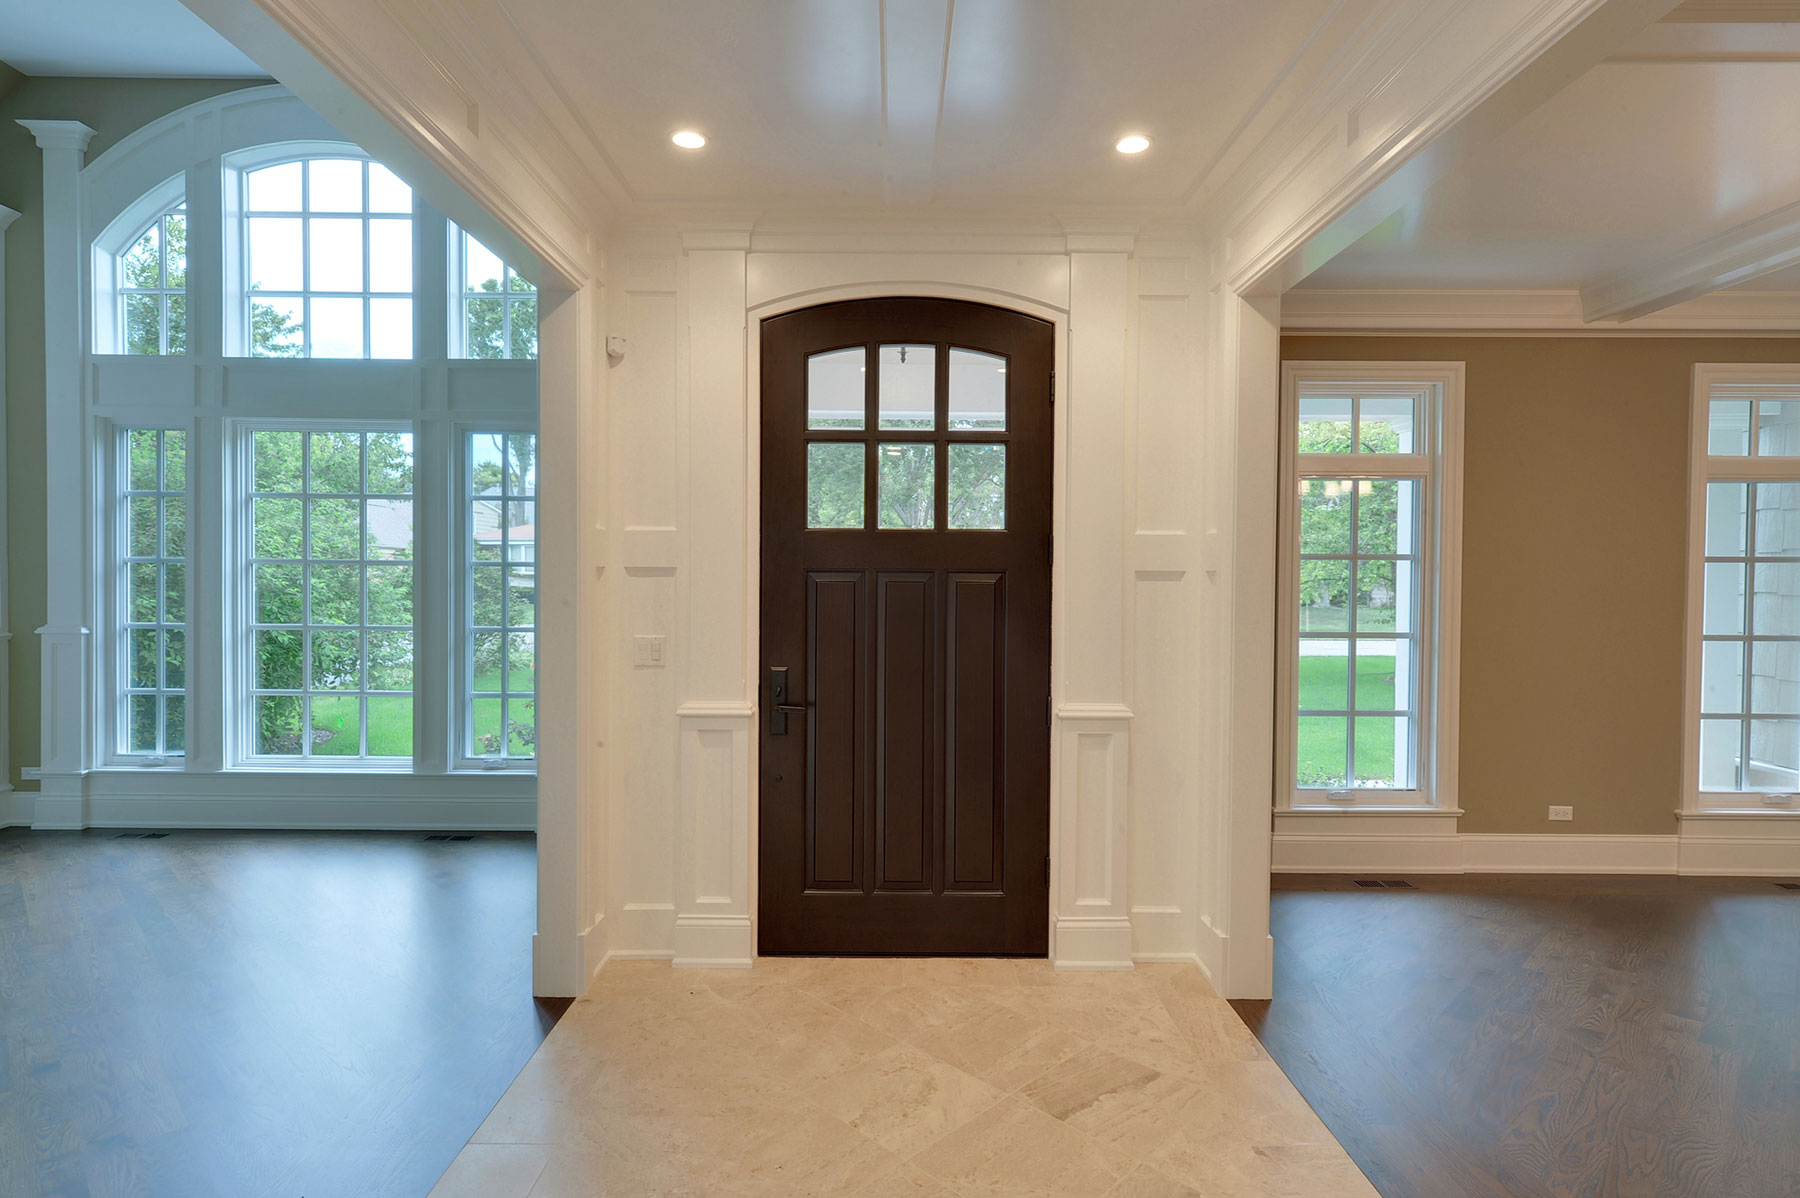 Solid Wood Front Entry Doors in-Stock | Classic  French Solid Wood Front Entry Door - Clear Beveled Glass GD-112WA - Glenview Haus - Custom Doors, Wine Cellars and Cabinets in Chicago